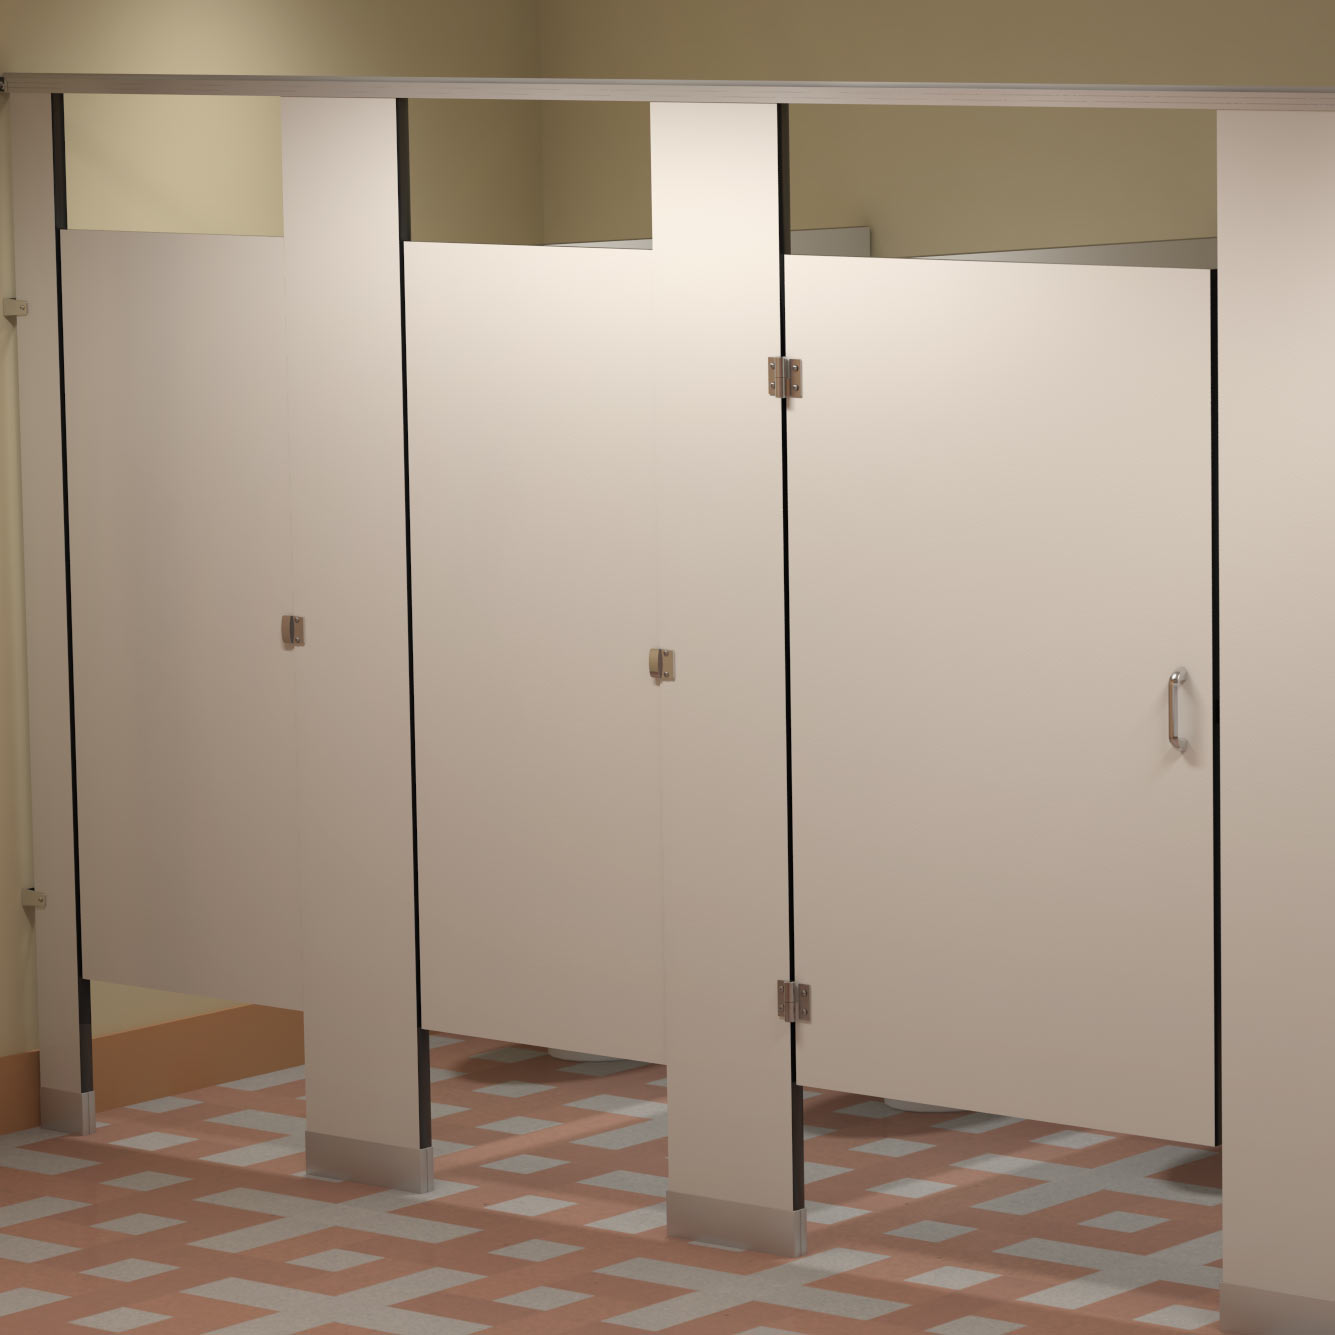 Phenolic Bathroom Partitions For Sale Cheap At Discount Wholesale Prices